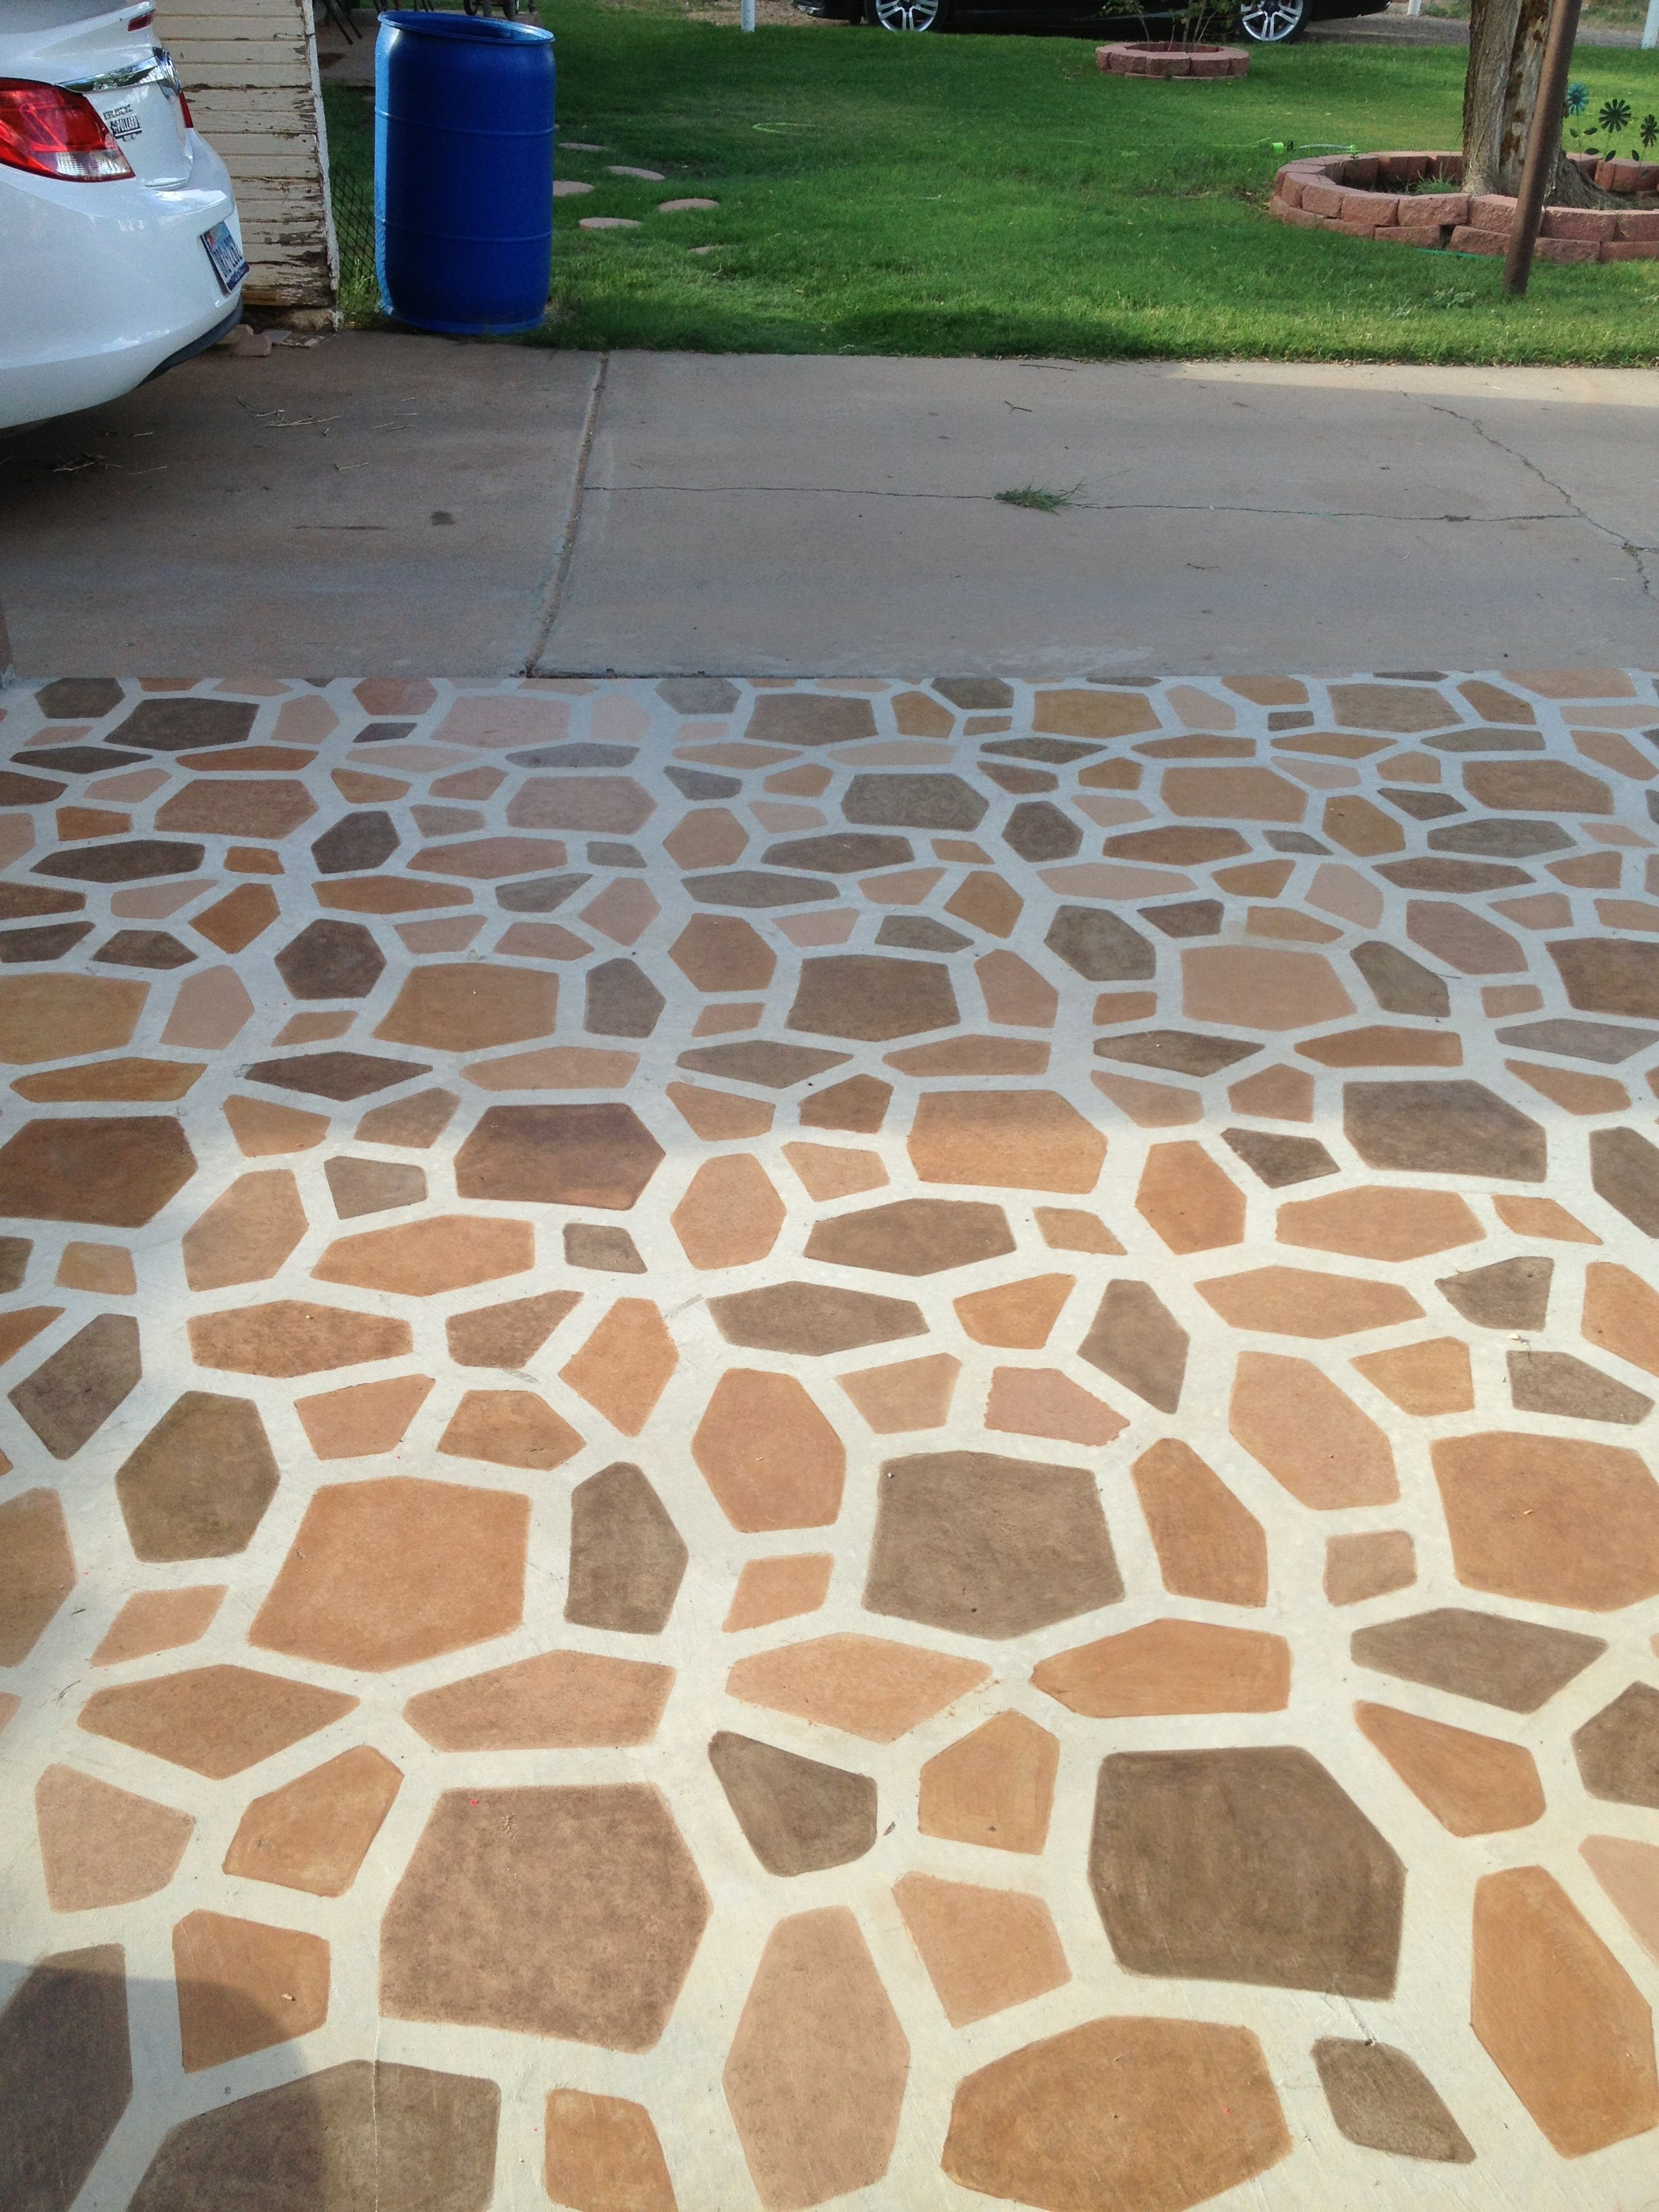 Stained Patio Stones Using A Path Mold Then Painted Grout With Cement Paint  Then Sealed!